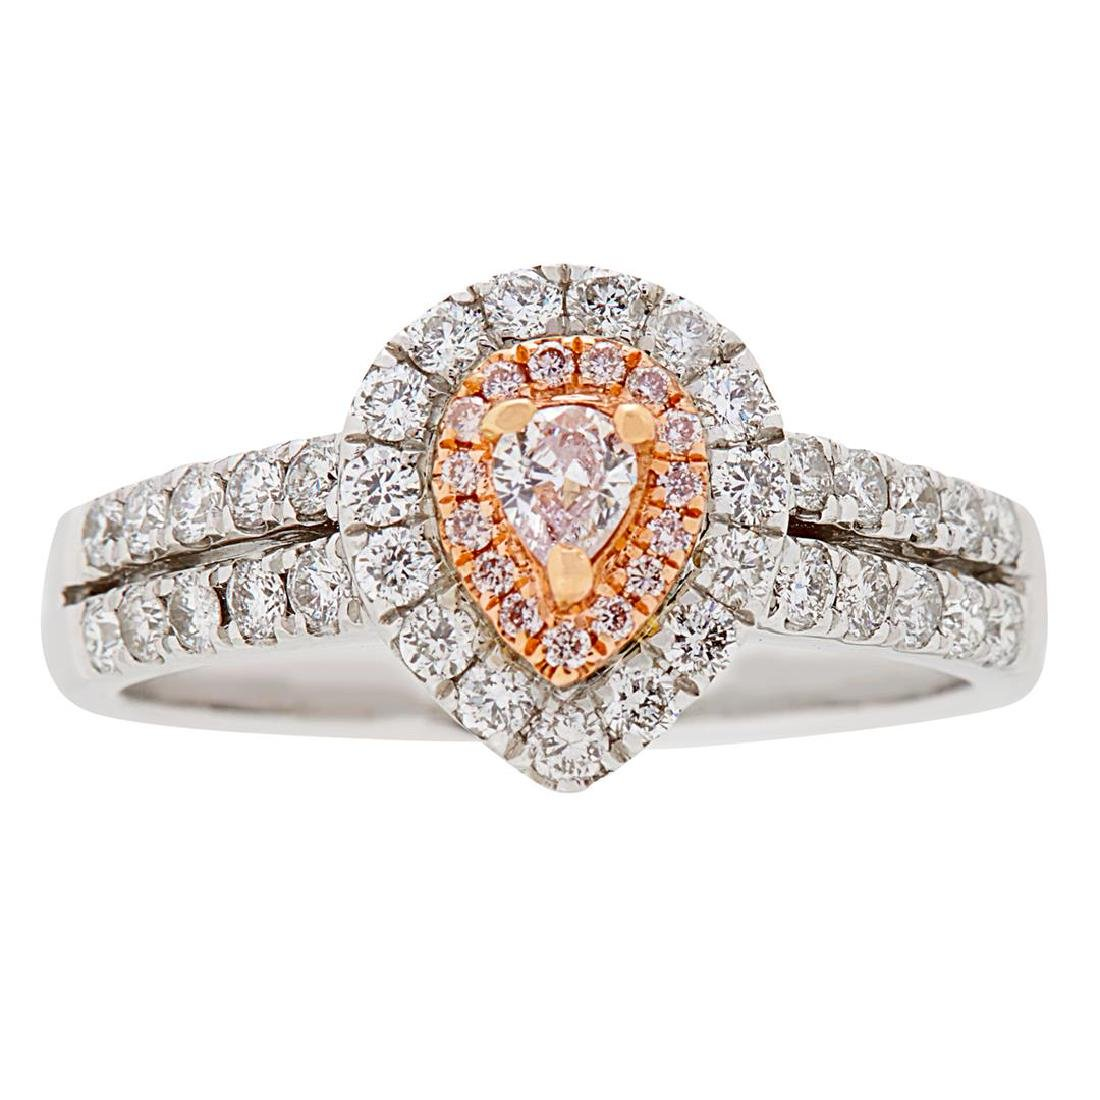 0.76 ctw Pink and White Diamond Ring - 18KT White and